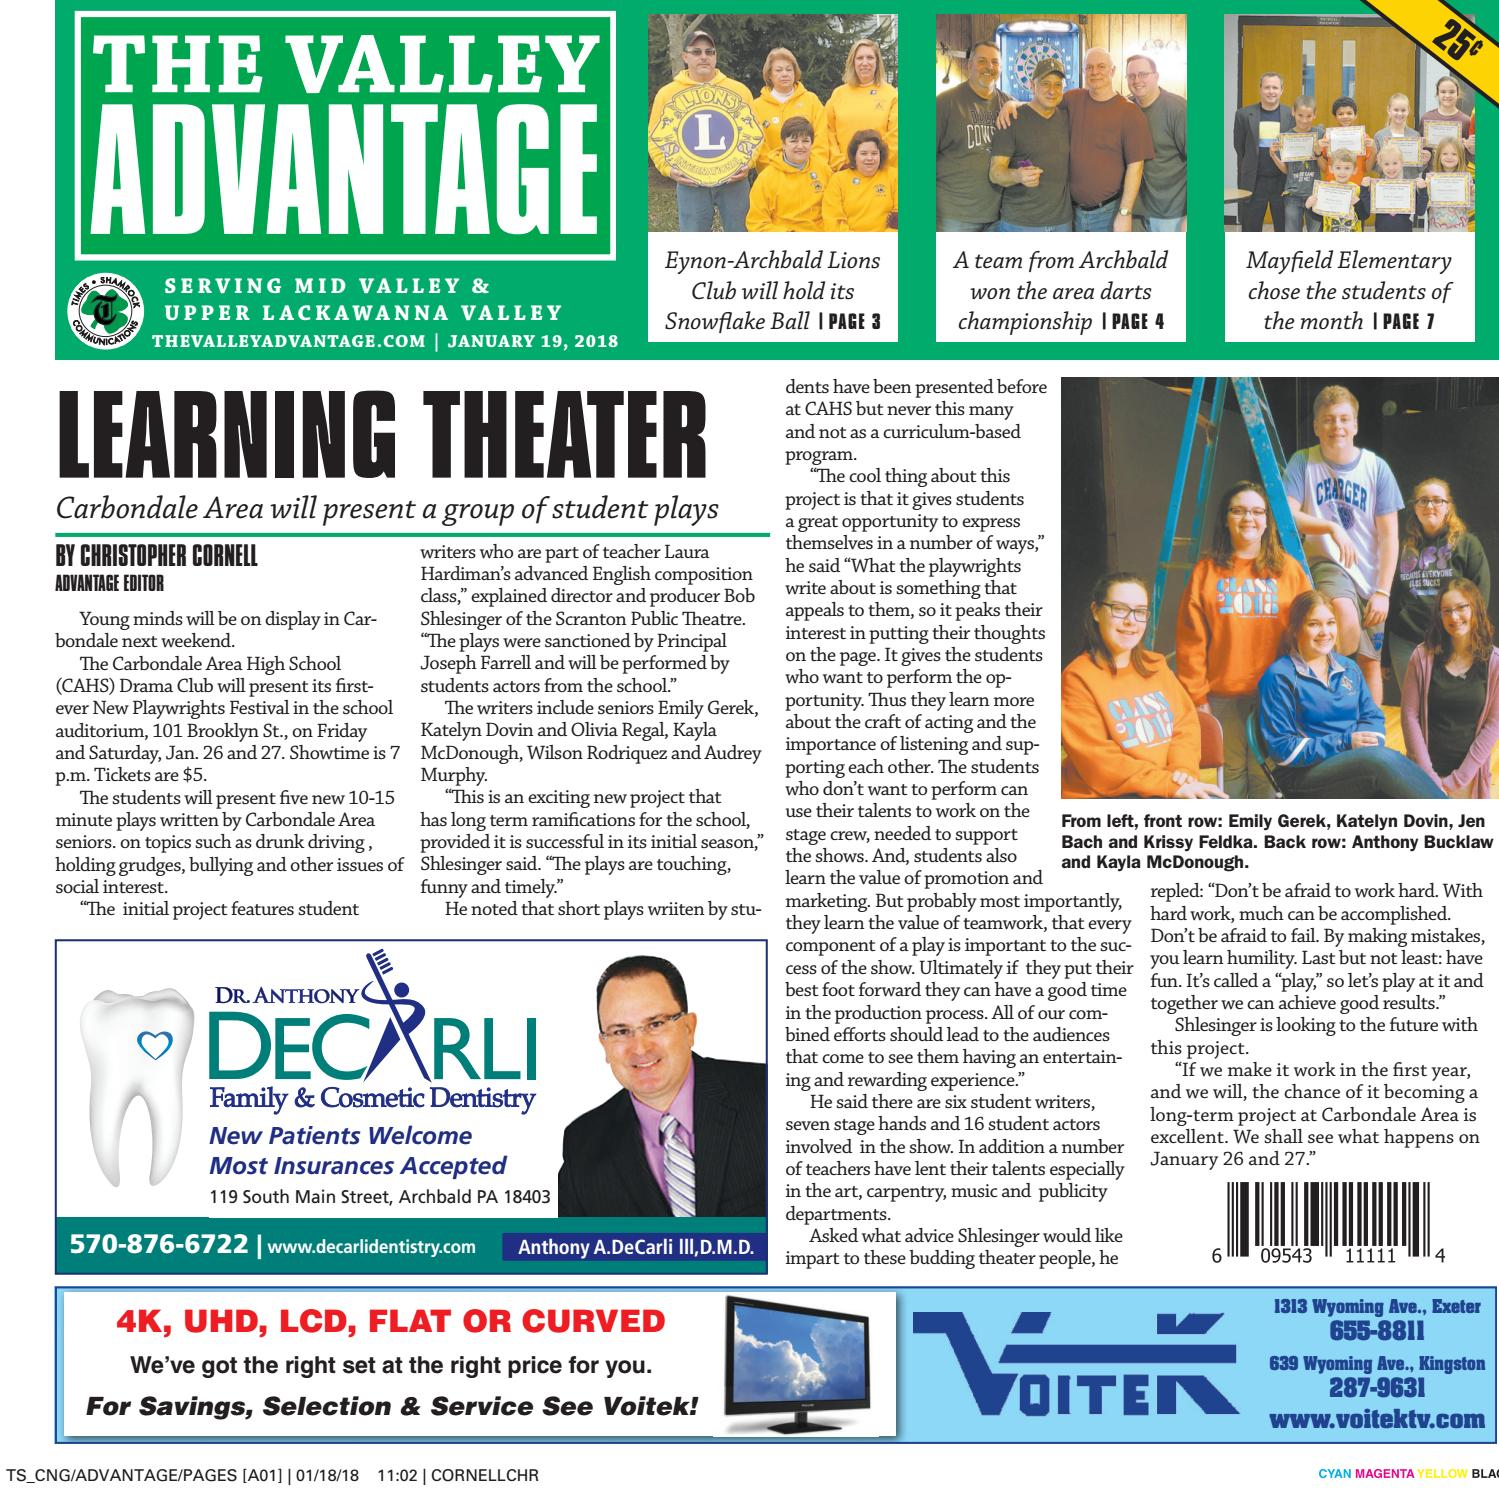 The Valley Advantage--01-19-18 by CNG Newspaper Group - issuu